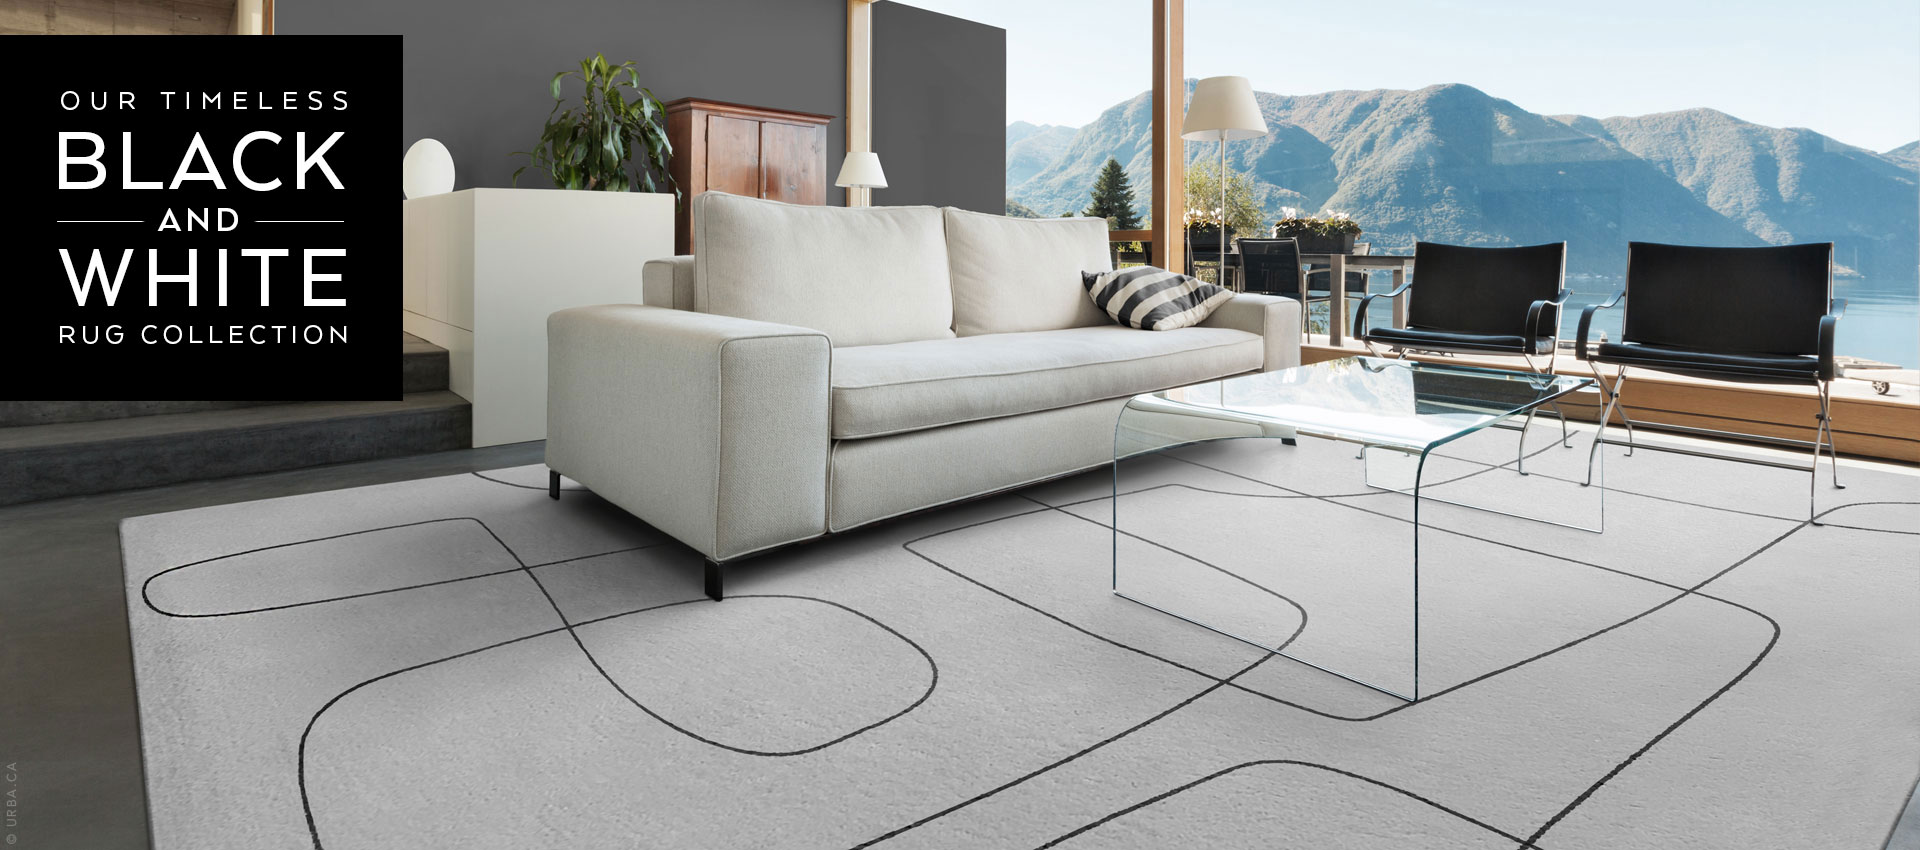 Black and White rug collection by Urba Rugs